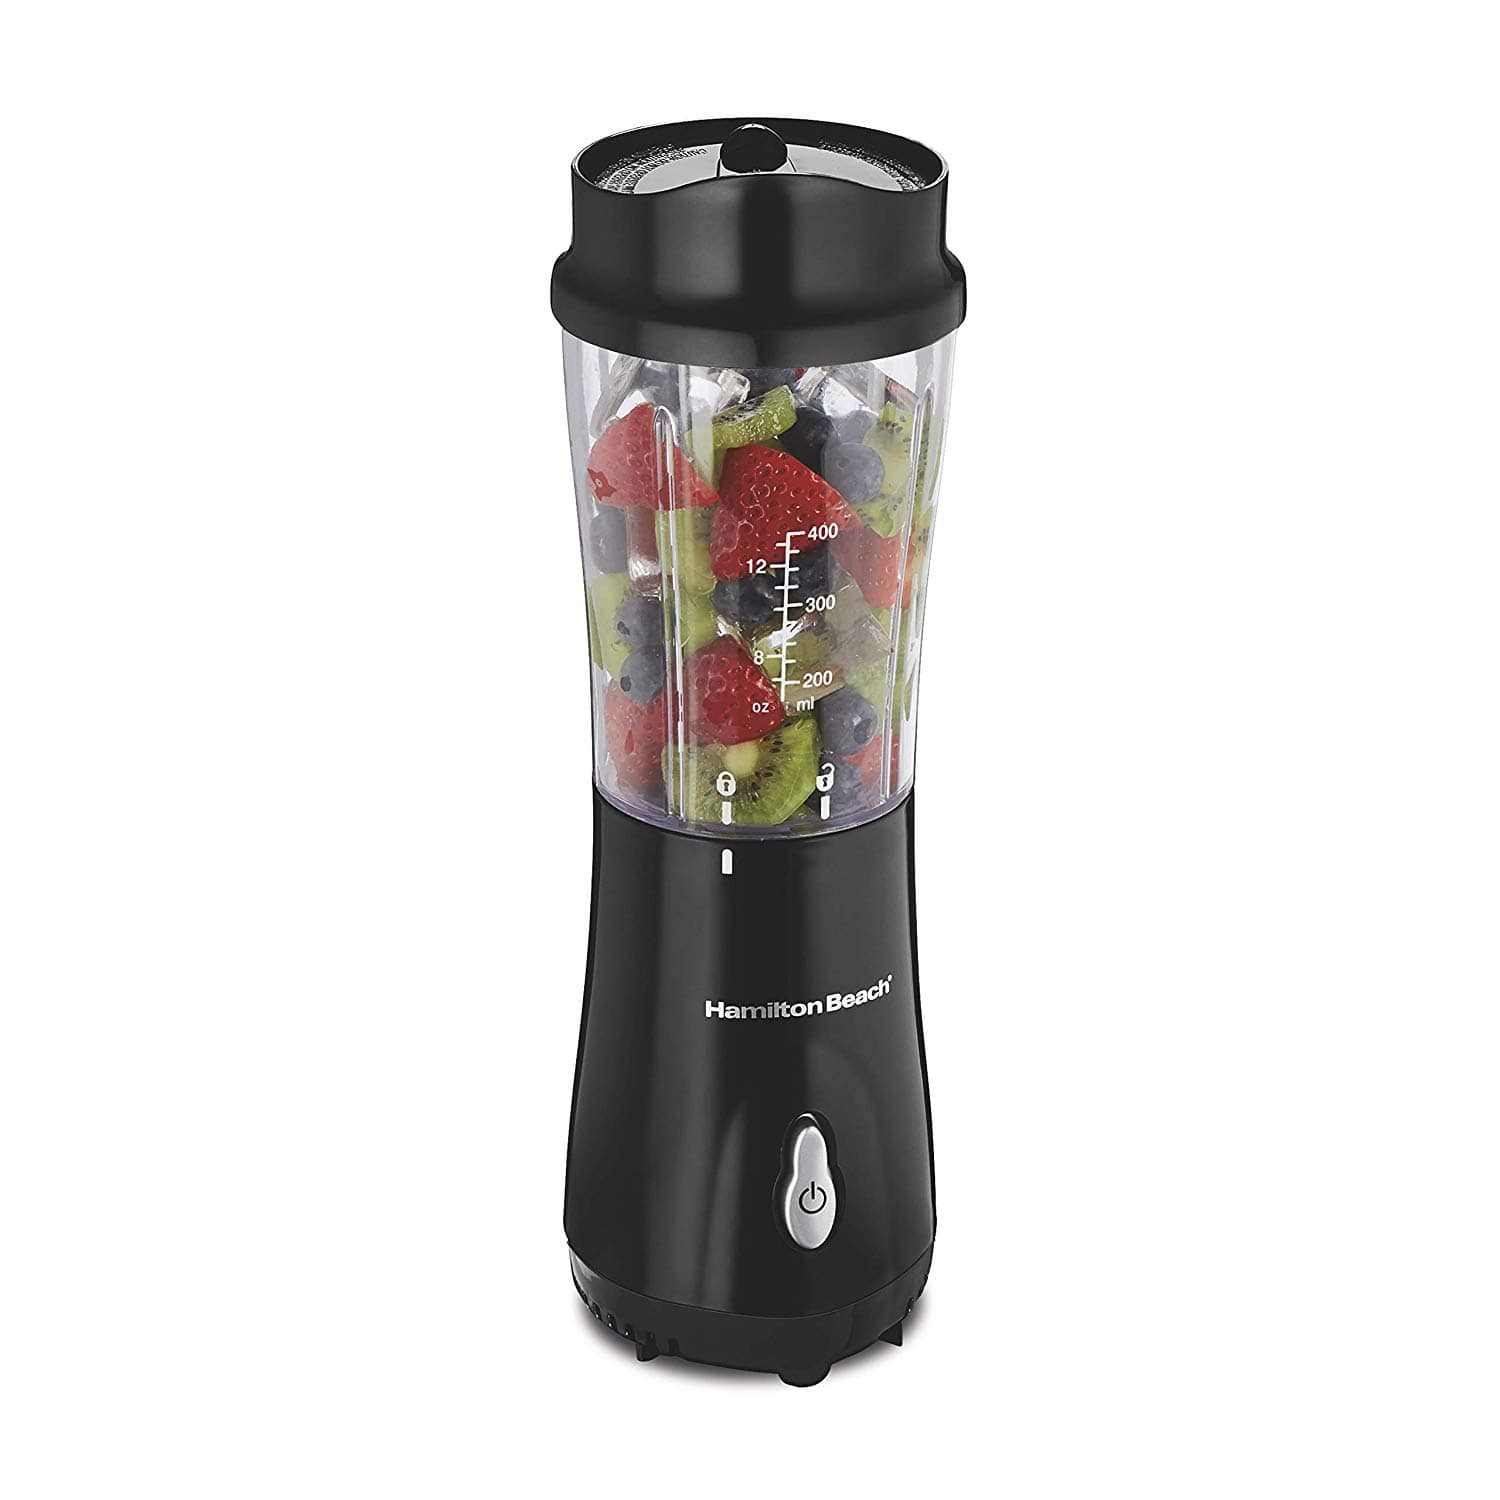 Hamilton Beach Personal Blender for Shakes and Smoothies with 14oz Travel Cup and Lid, Black (51101AV) $15.87